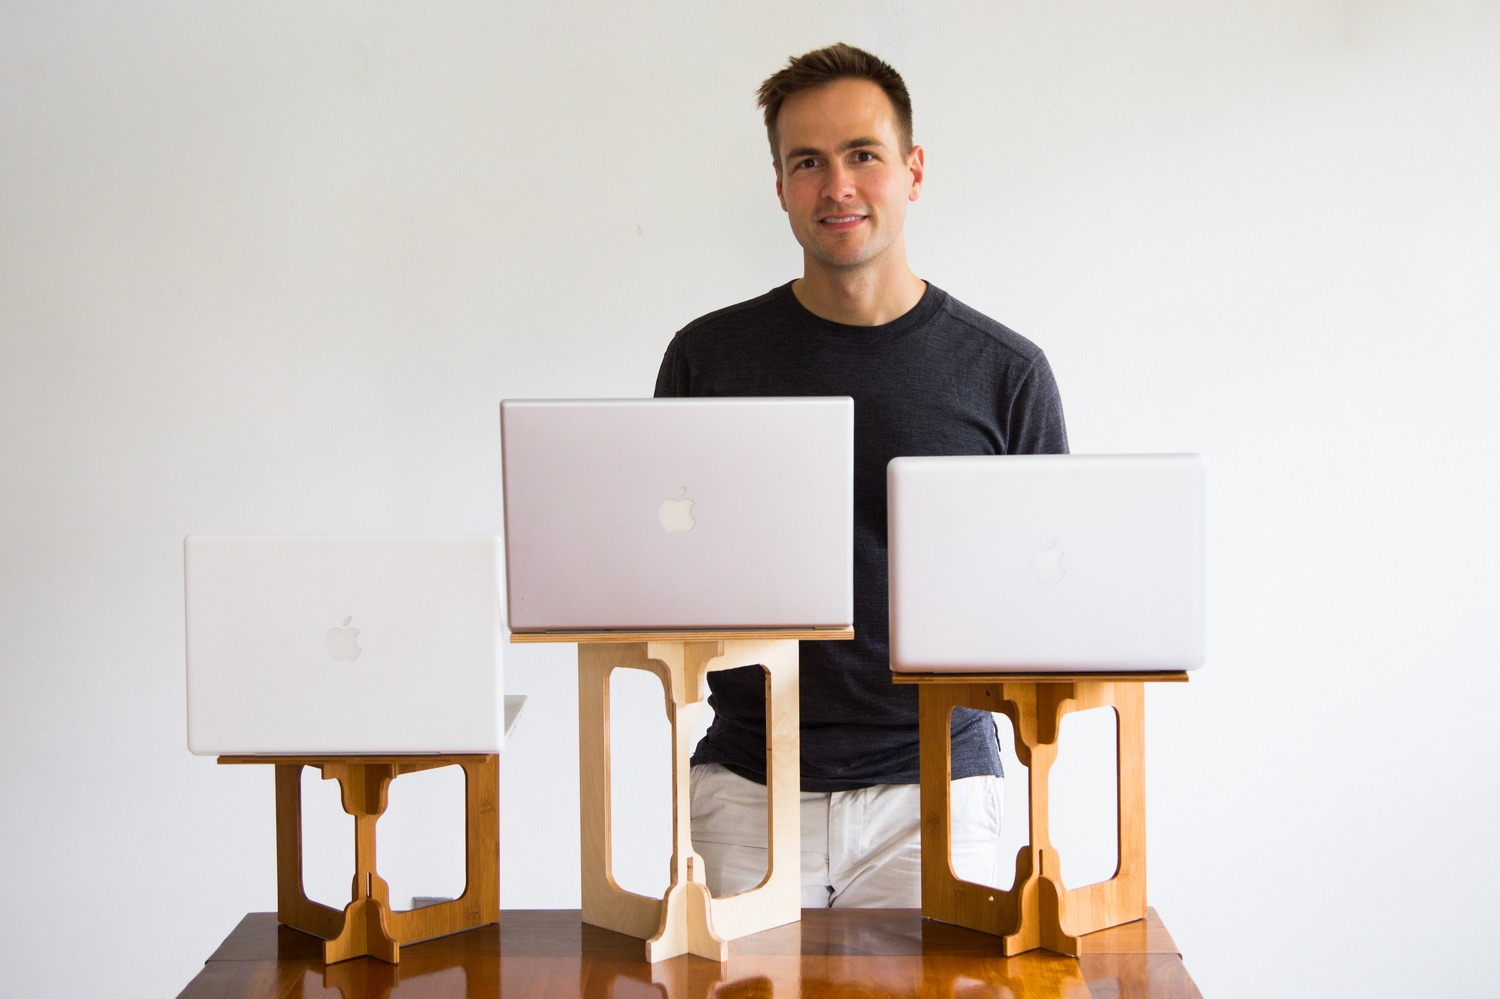 Luke A. Leafgren, resident dean of Mather House, has created a portable standing desk.